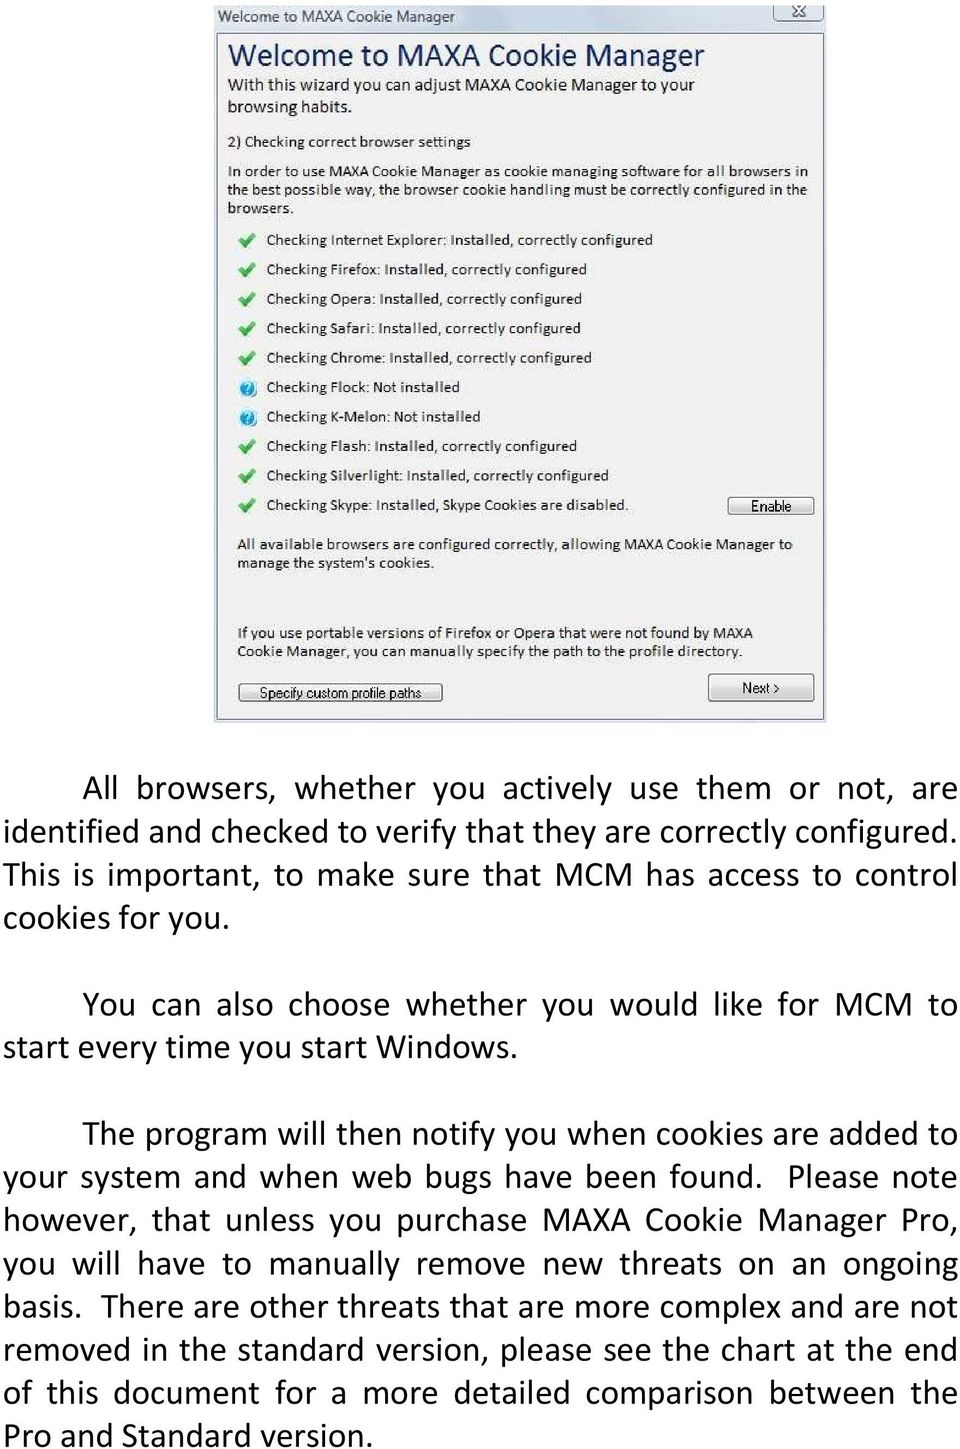 The program will then notify you when cookies are added to your system and when web bugs have been found.